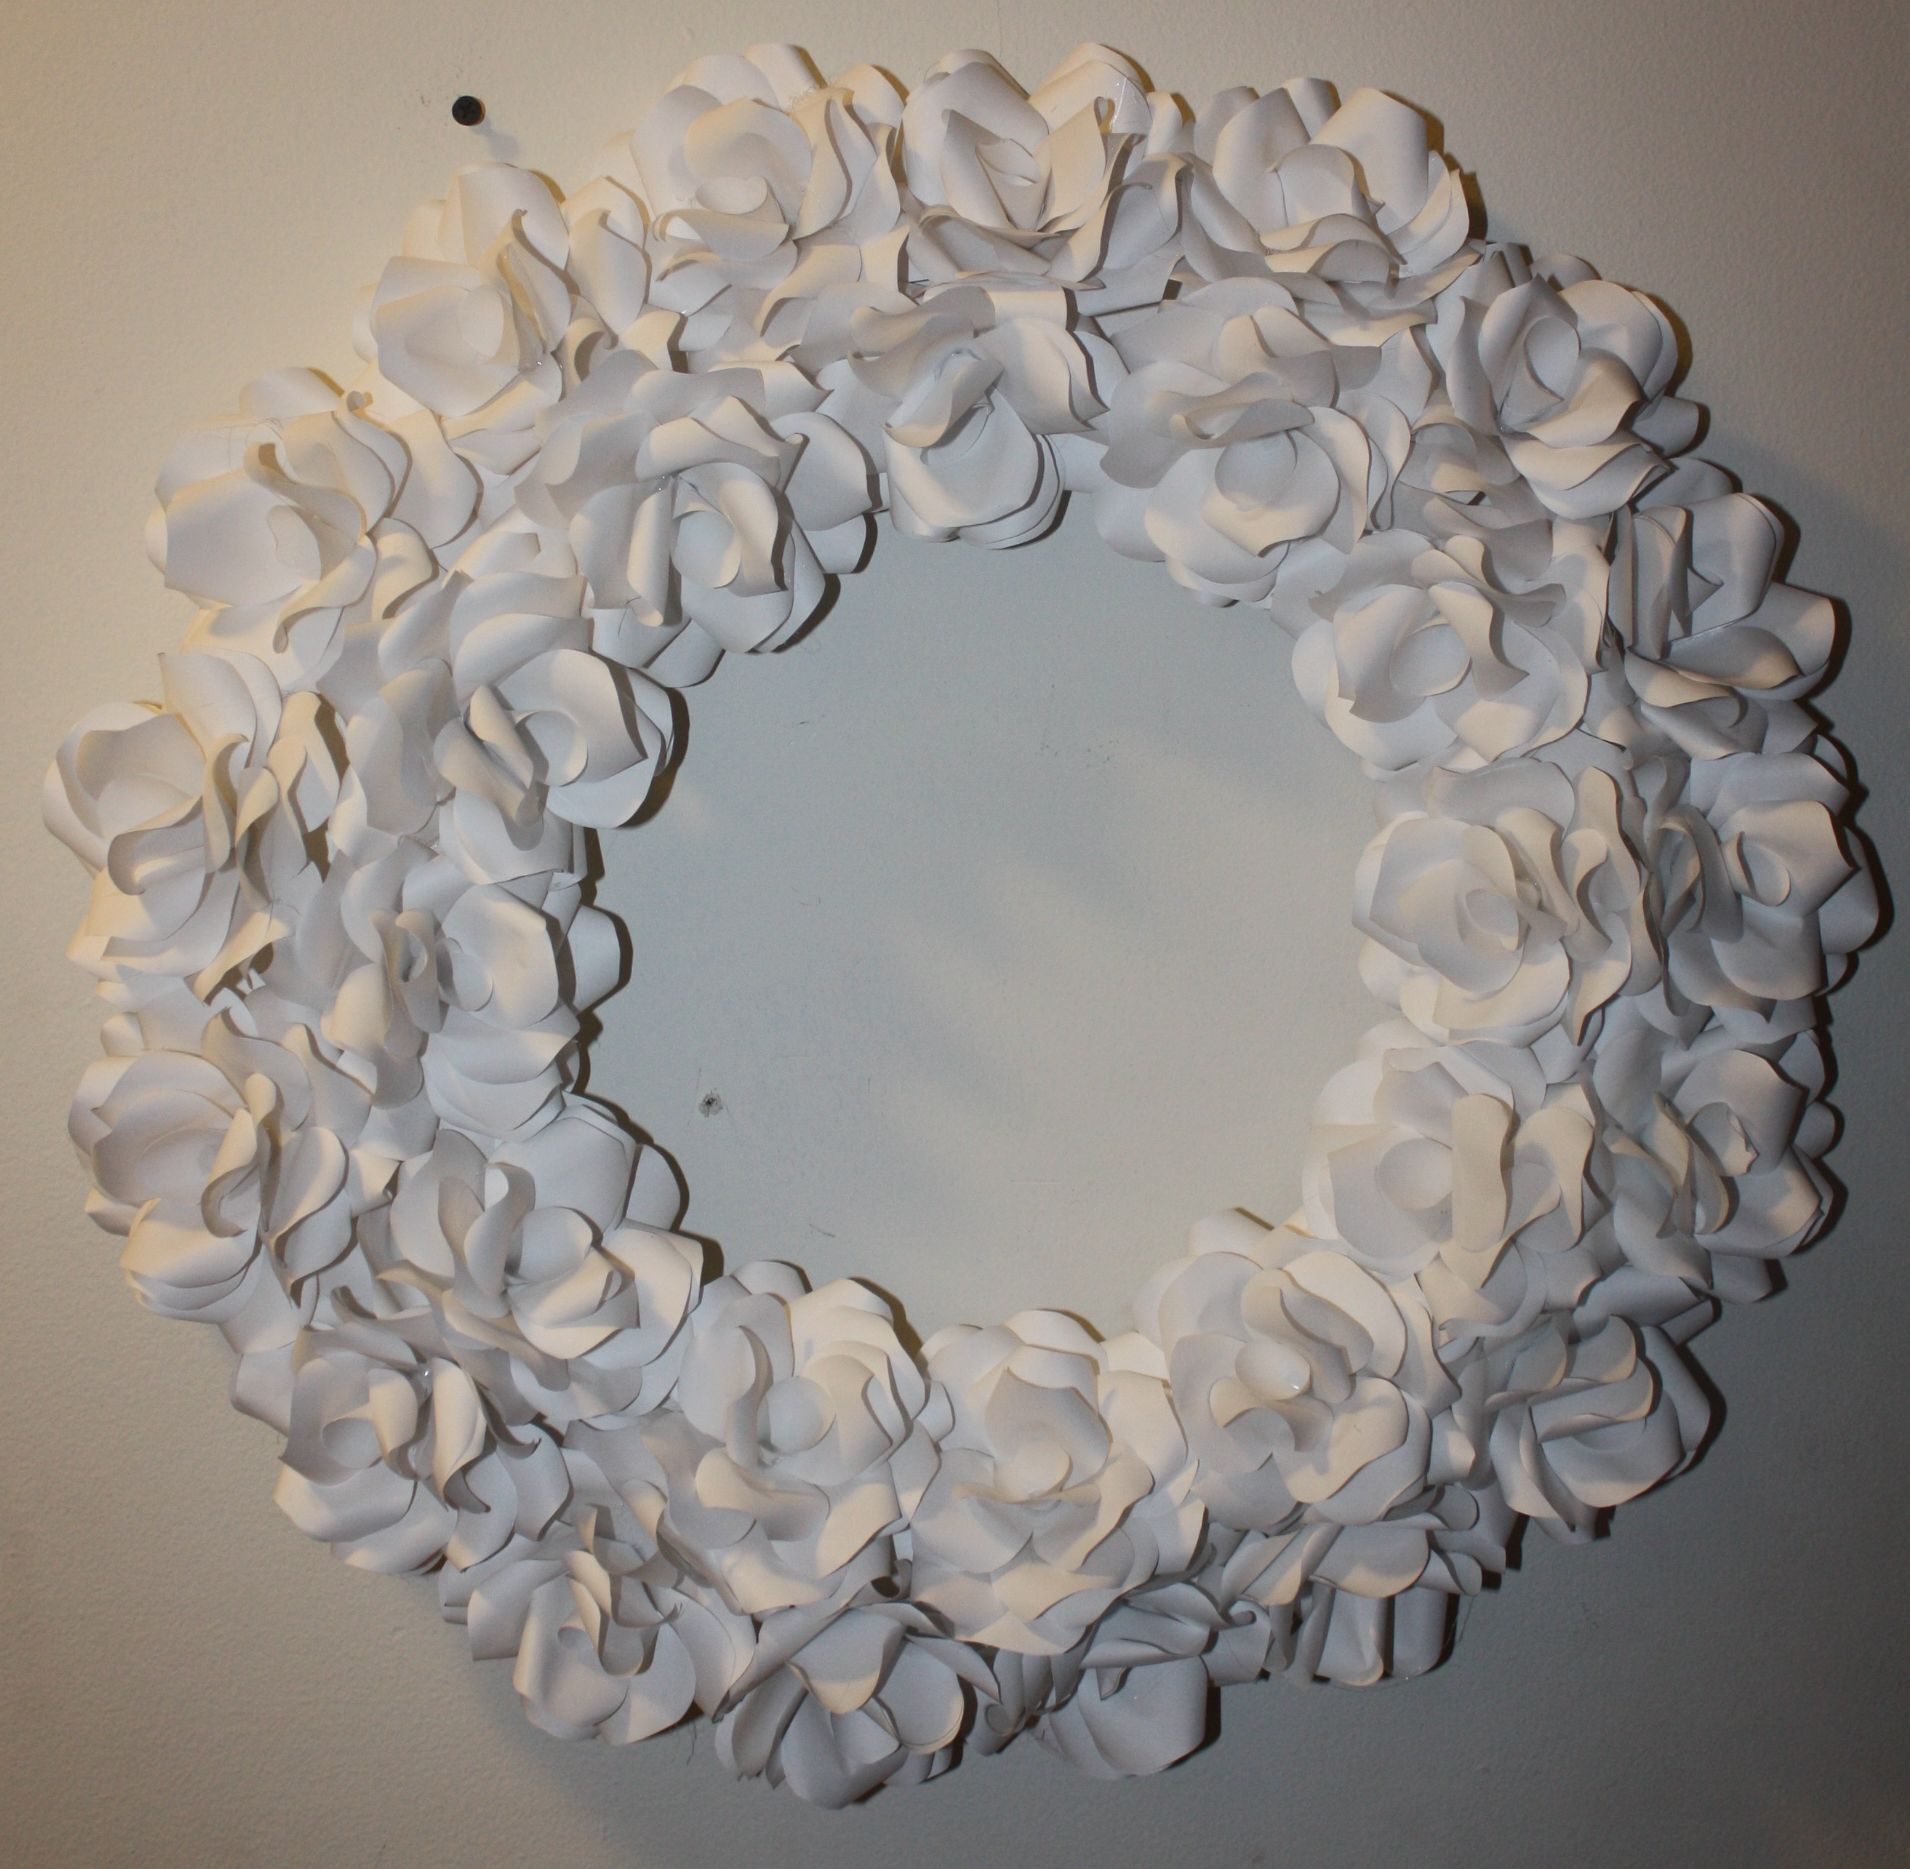 DIY Paper Flower Wreath I used printer paper and a glue gun to make this wreath